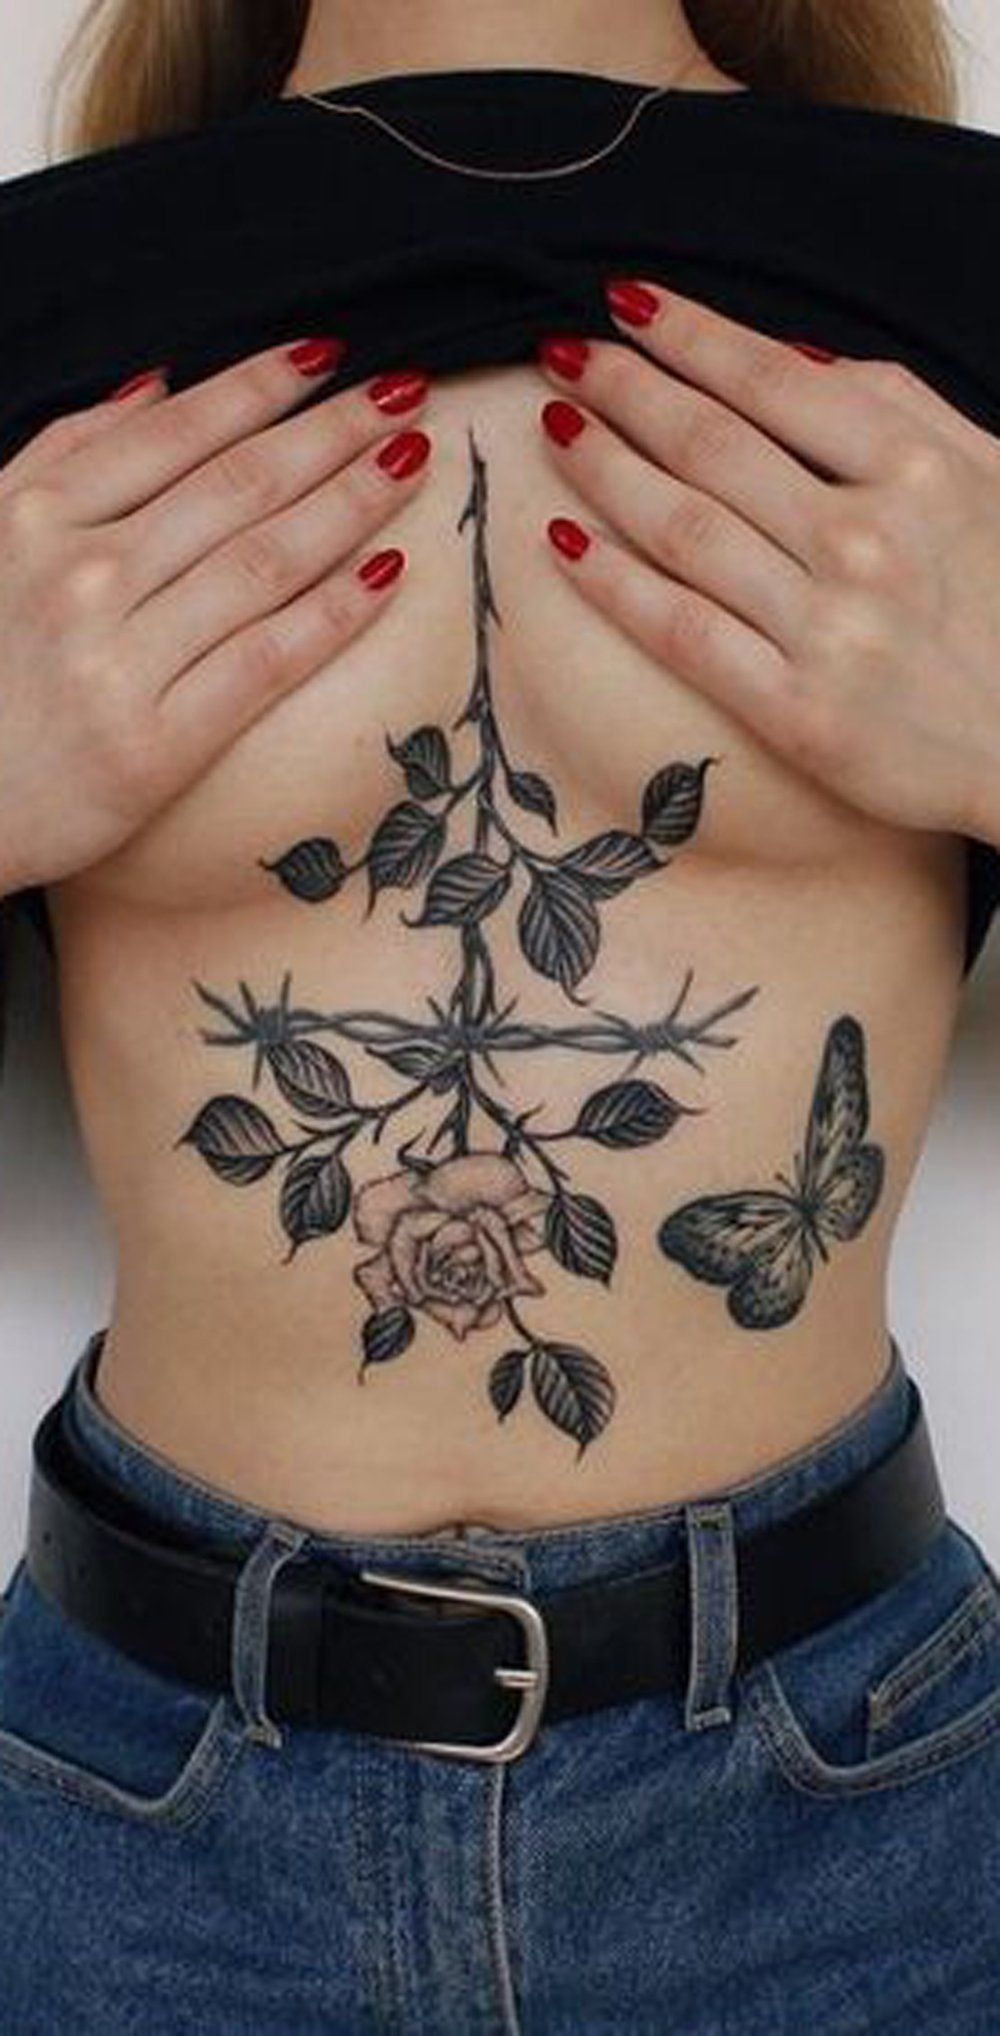 Realistic Large Rose Sternum Tattoo Ideas for Women